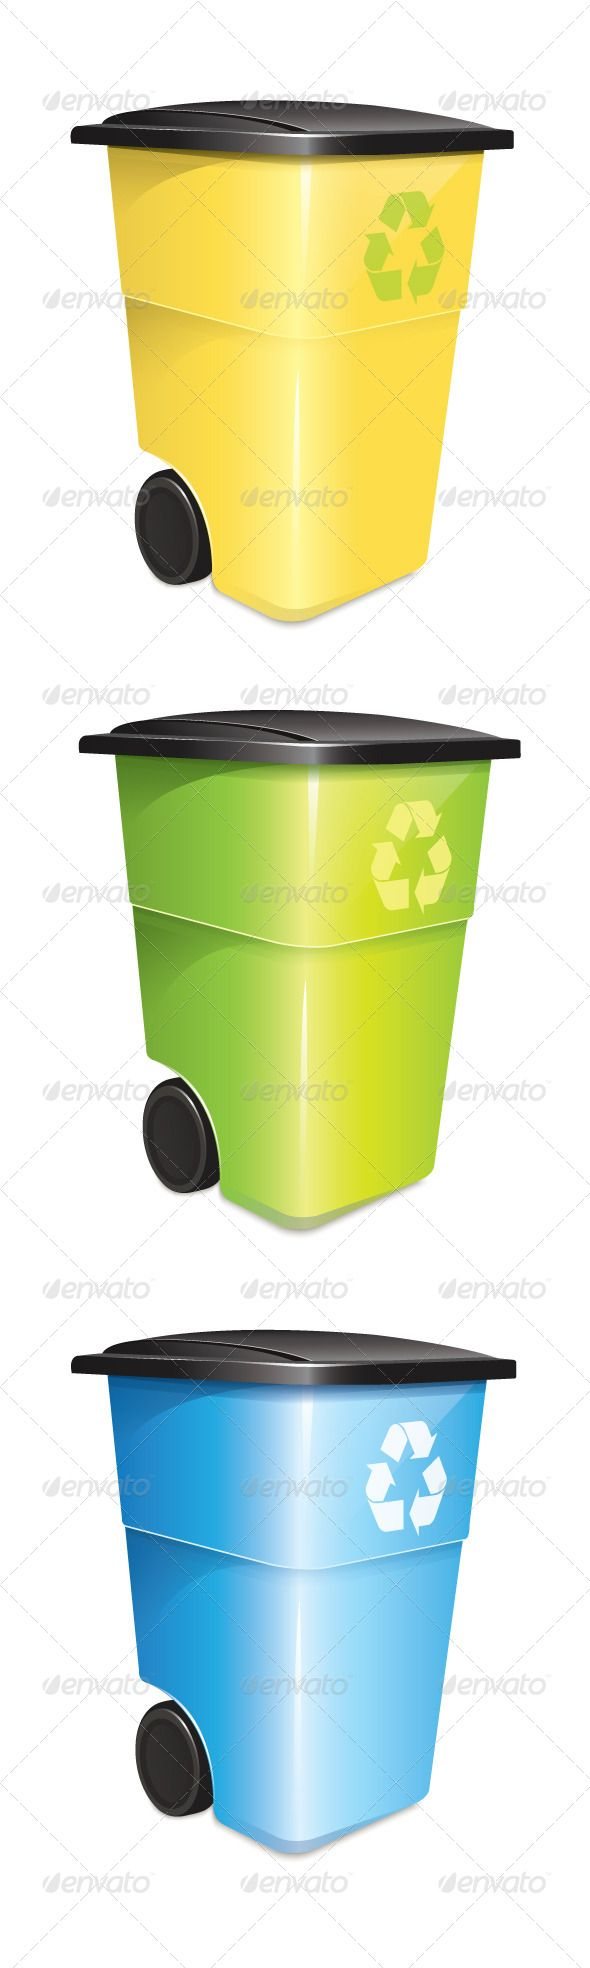 "Garbage Container Set  #GraphicRiver        Includes:  	 FOLDER: ""Garbage Container Set – JPG"" Contains: jpg image  	 FOLDER: ""Garbage Container Set – EPS"" Contains: fully editable Vector Object EPS. Minimum Adobe Illustrator CS Version – CS10.  	 FOLDER: ""Garbage Container Set – AI"" Contains: fully editable AI file. Minimum Adobe Illustrator CS Version – CS10. The image is made up entirely of vector shapes so you may resize to whatever size you need.     Created: 20November13…"